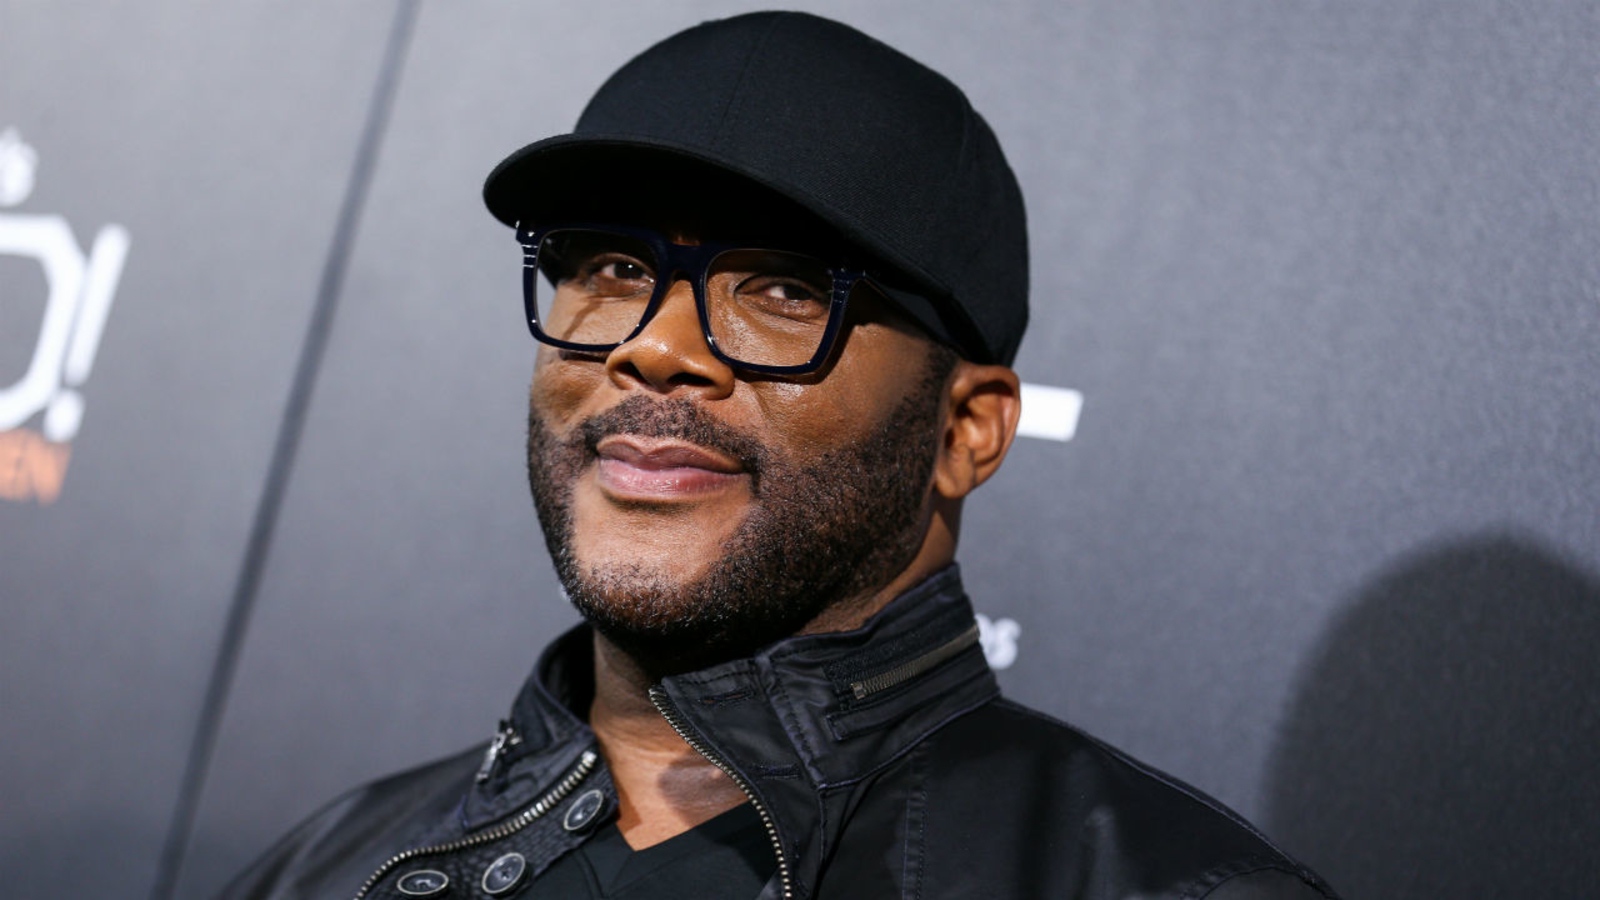 Tyler Perry pays off all layaway items at 2 Walmart stores